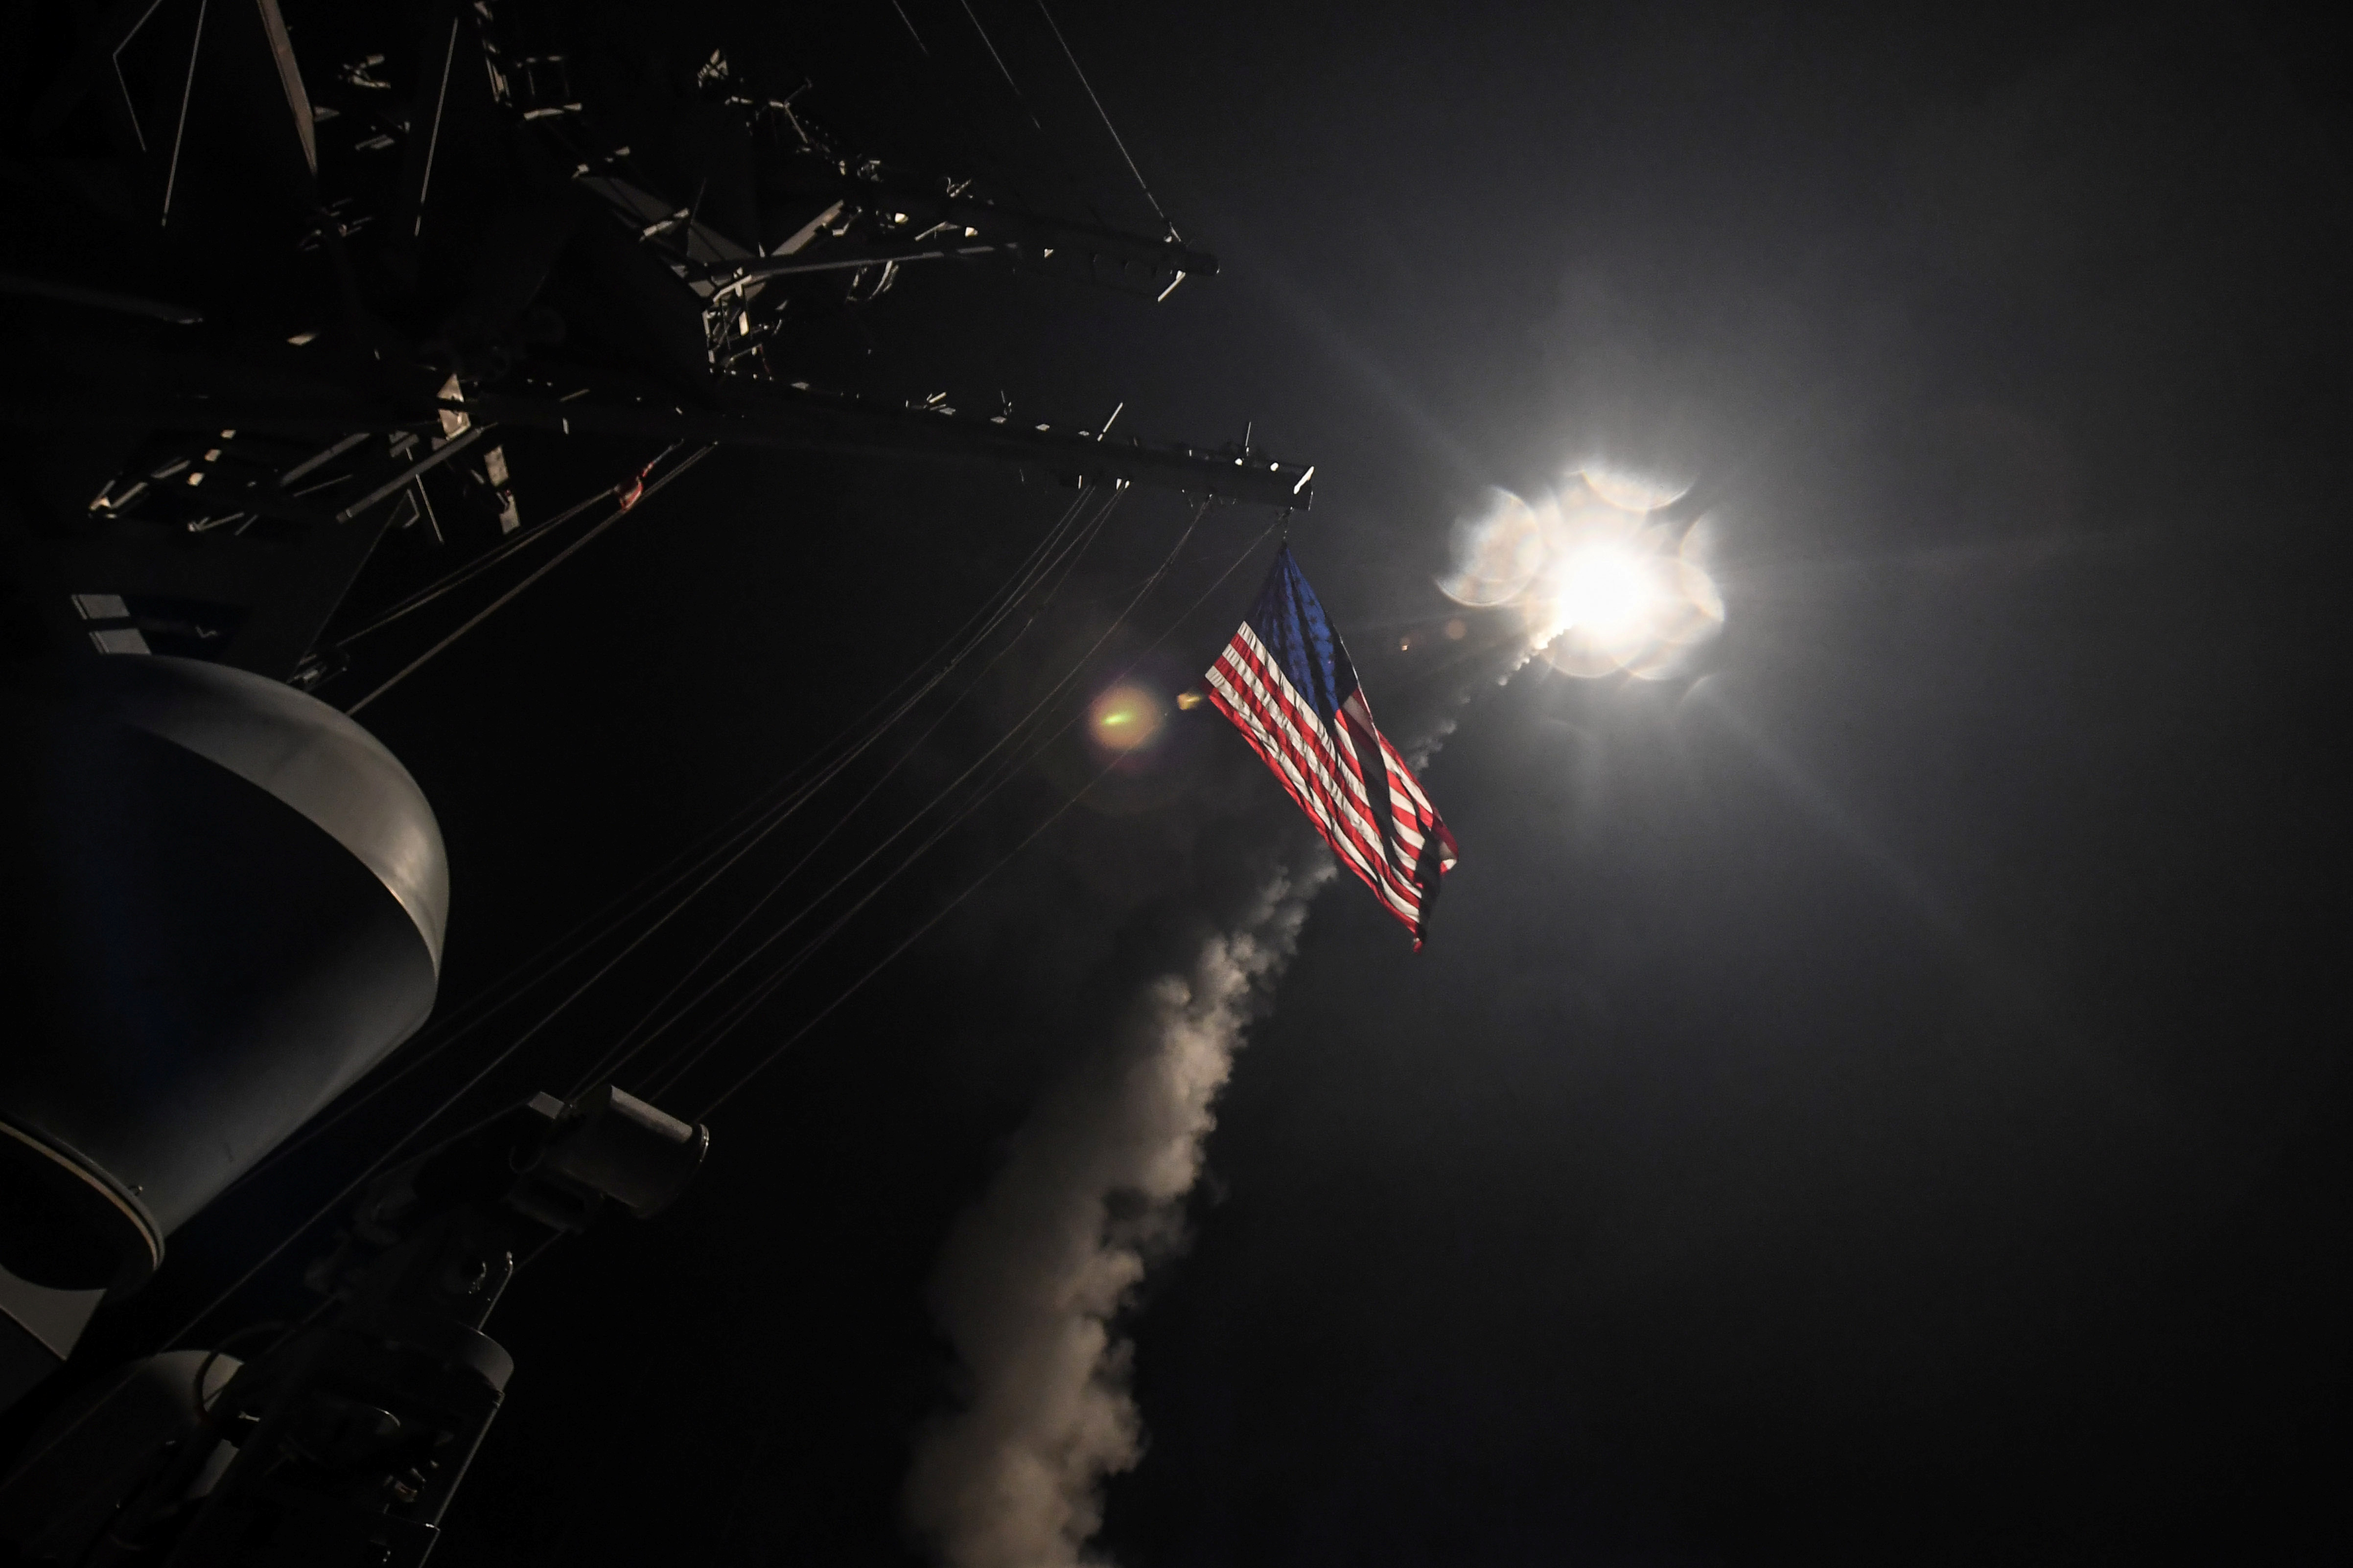 U.S. Navy guided-missile destroyer USS Porter conducts strike operations against Syria while in the Mediterranean Sea.